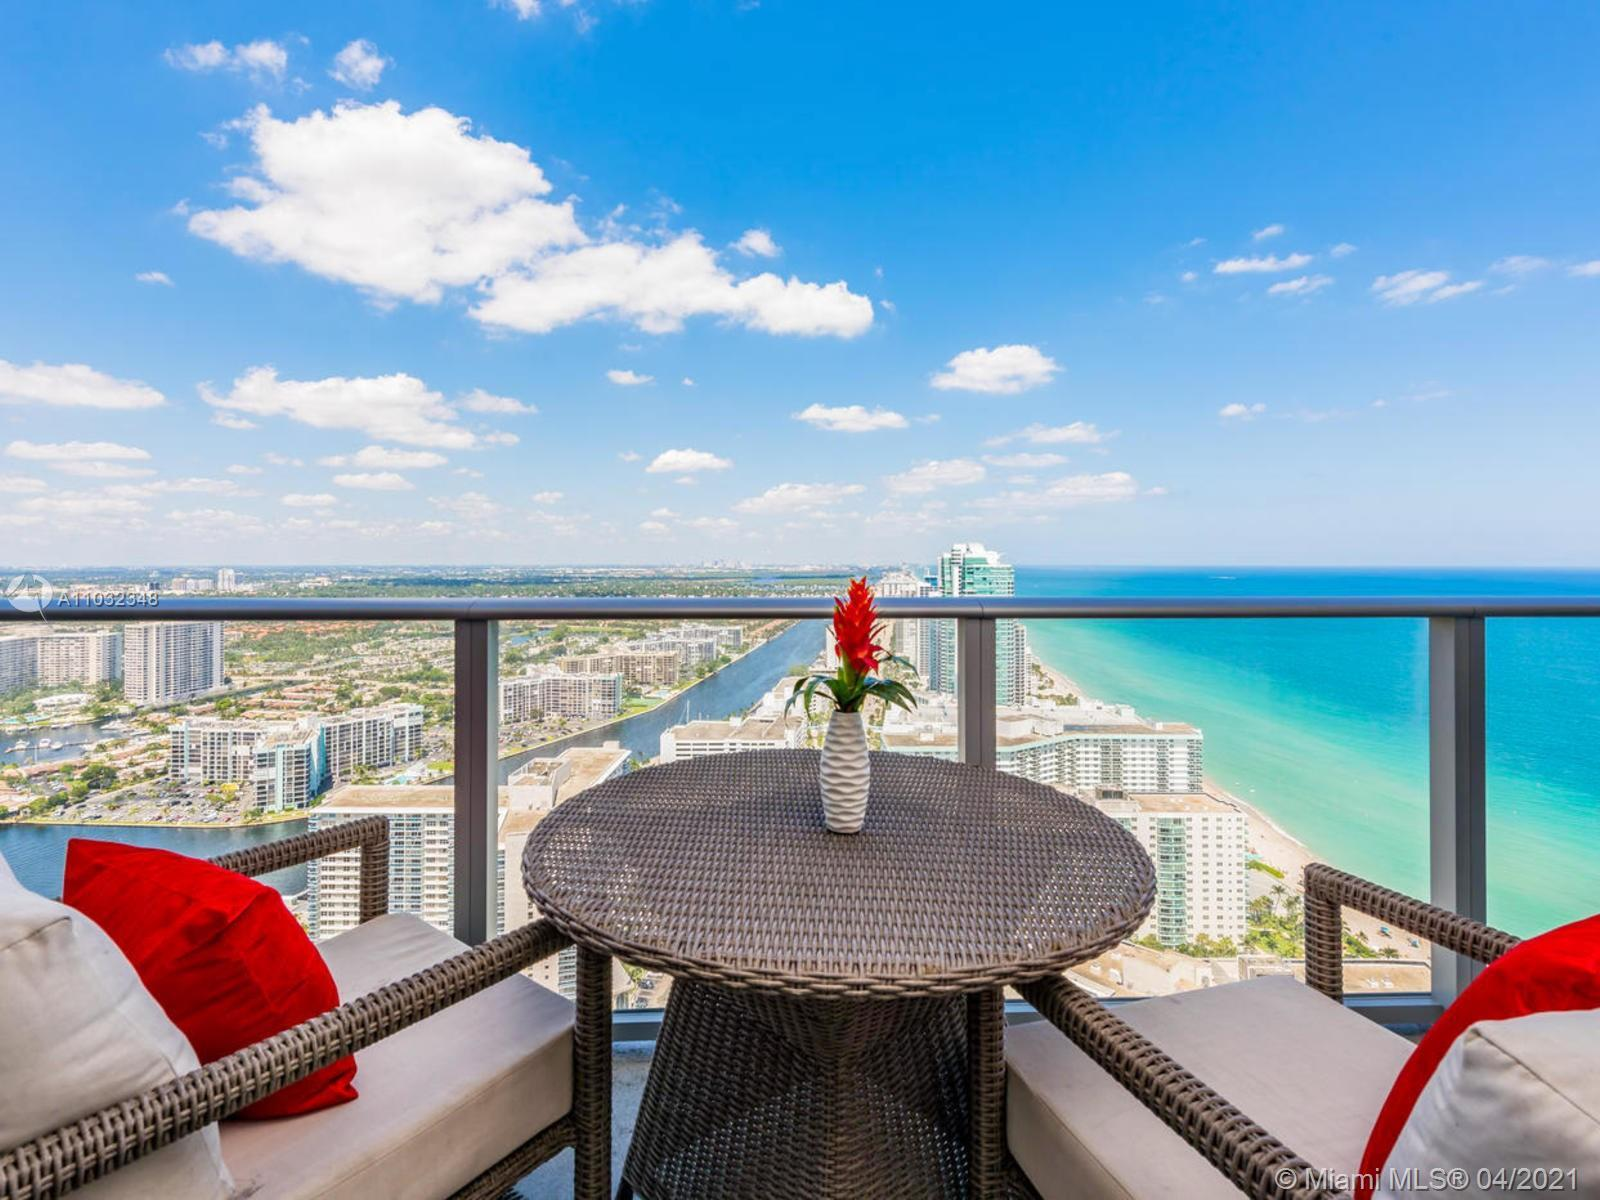 Bright and spacious residence overlooking ocean and city in the most popular Hallandale Beach area.